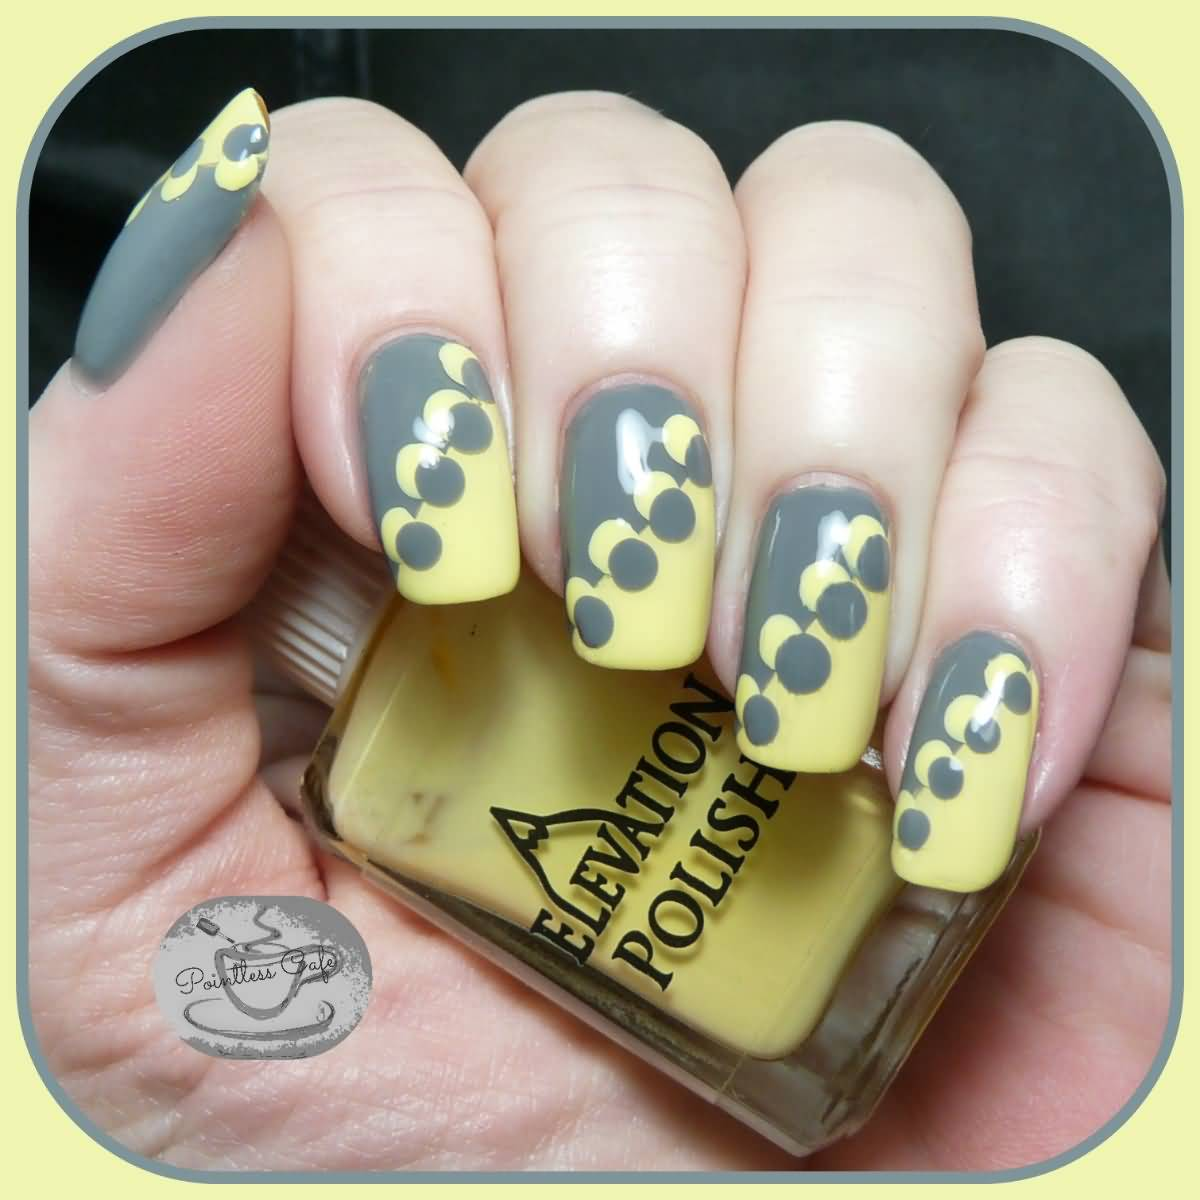 Grey and yellow nail polish designs best image nail 2017 for Yellow and gray design